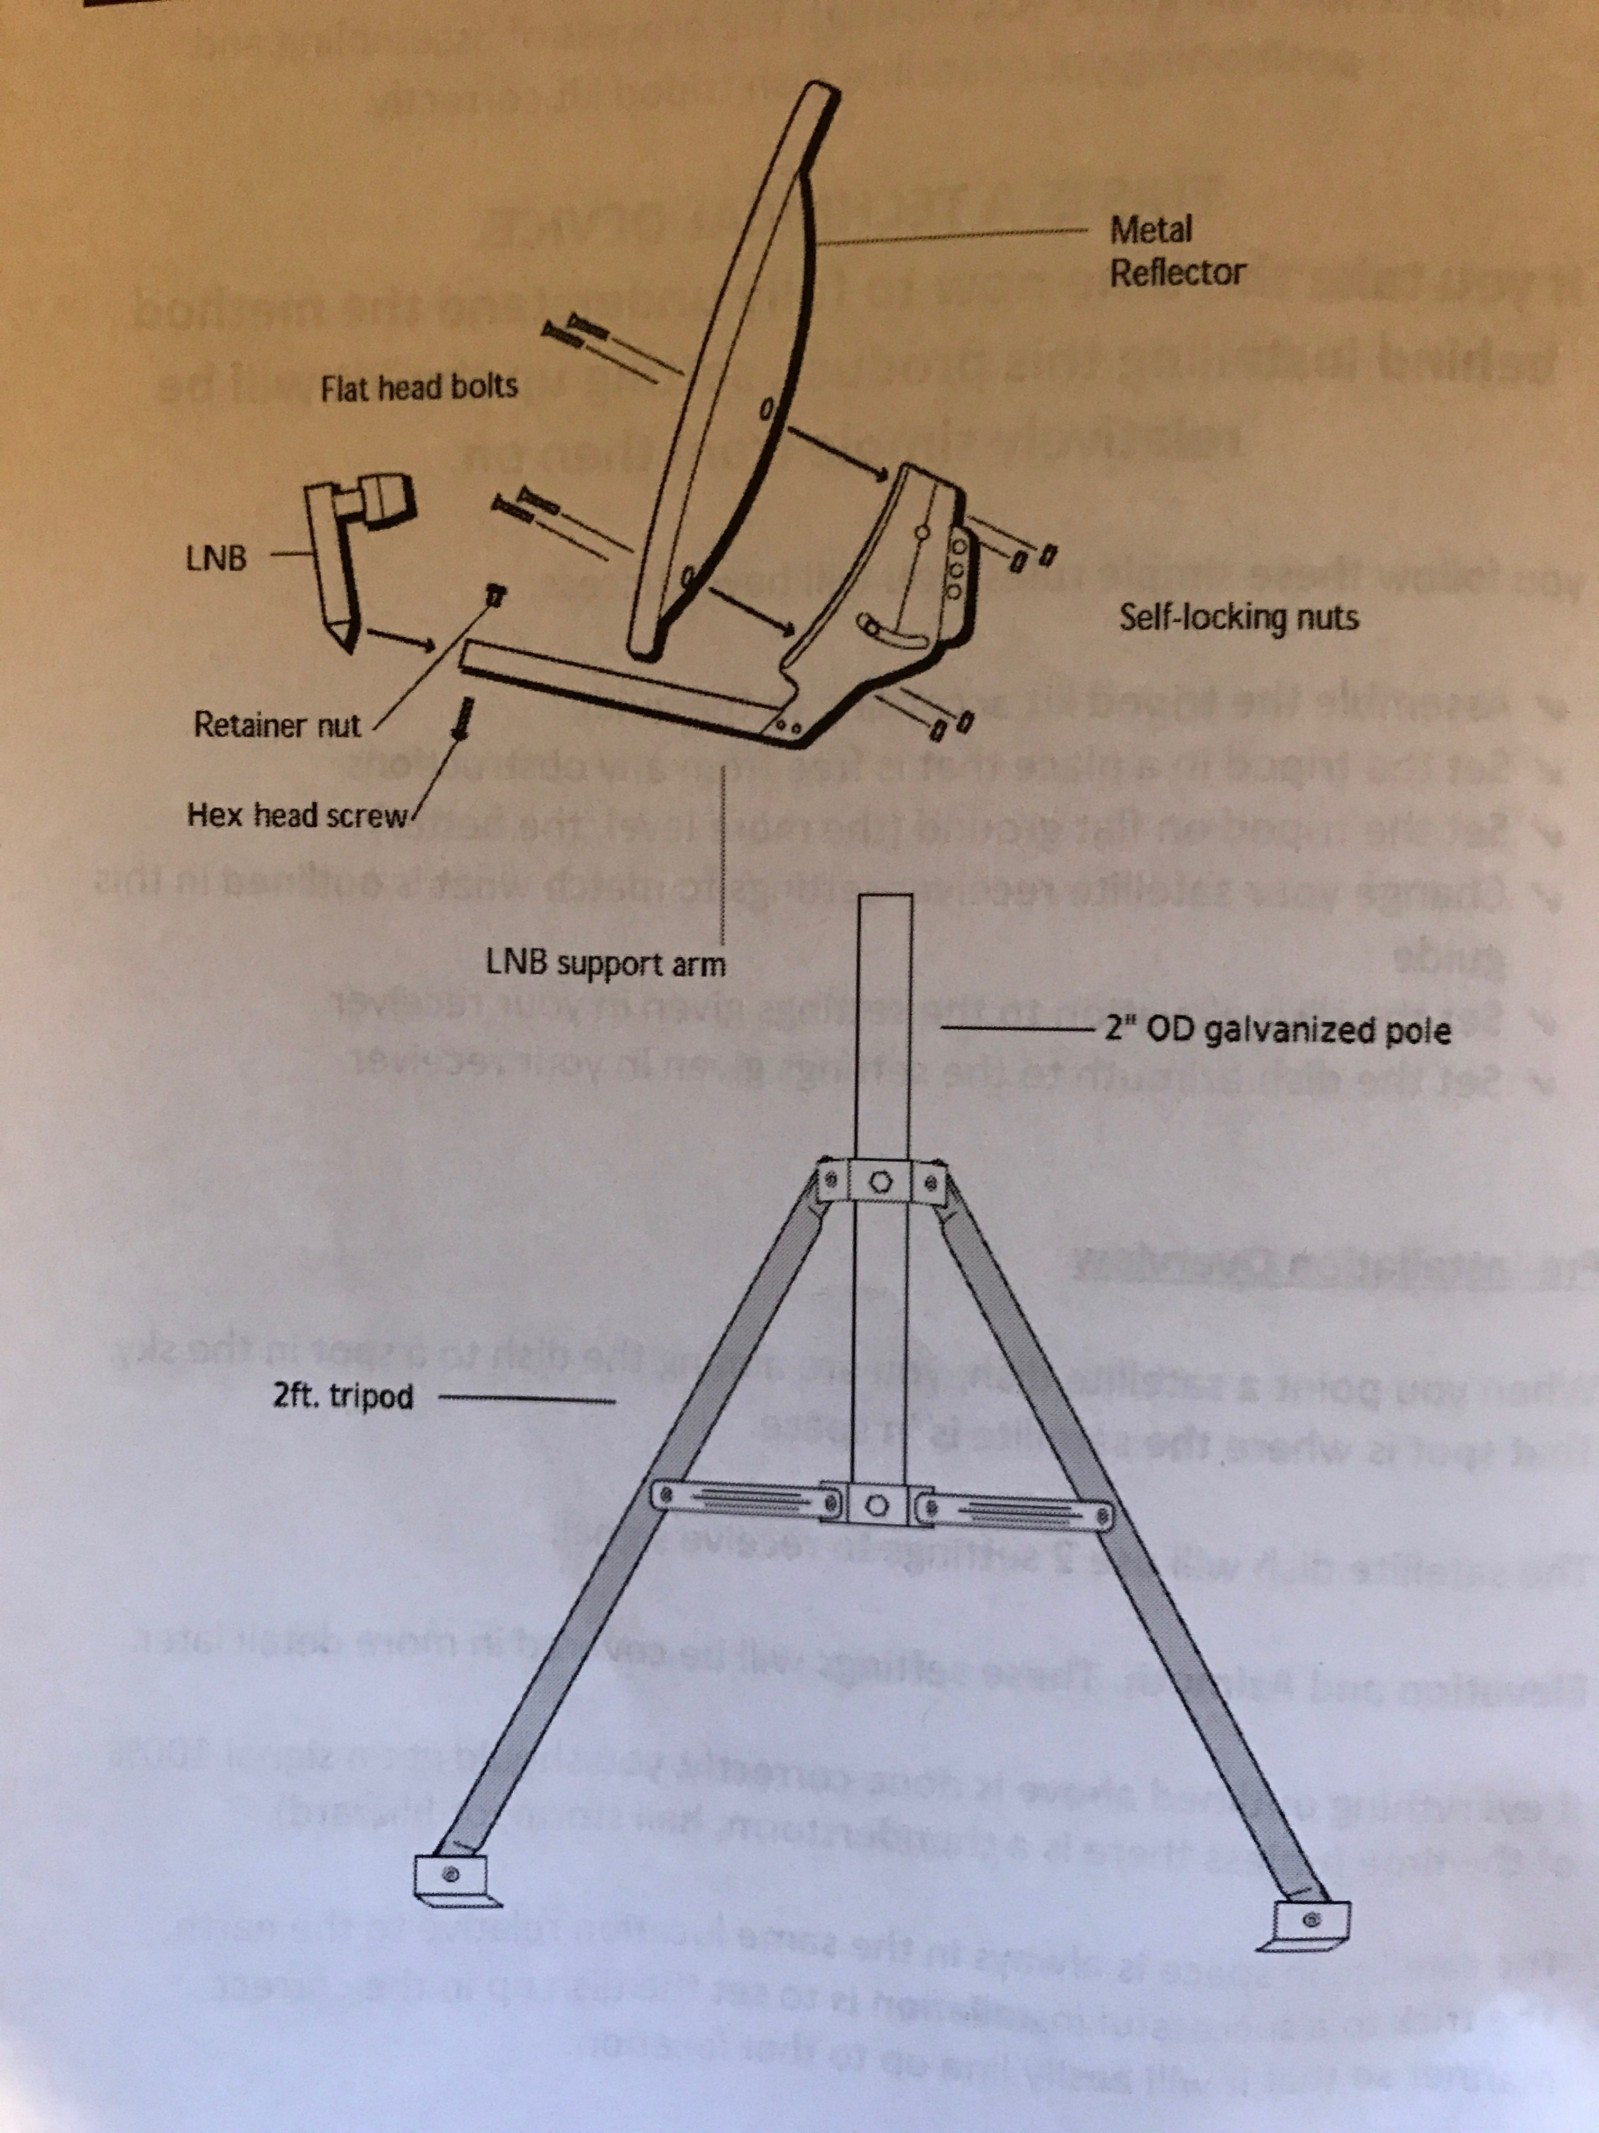 hight resolution of we have a different lnb and lnb mounting bracket which is mounted slightly different than pictured here the tripod requires no assembly and simply unfolds